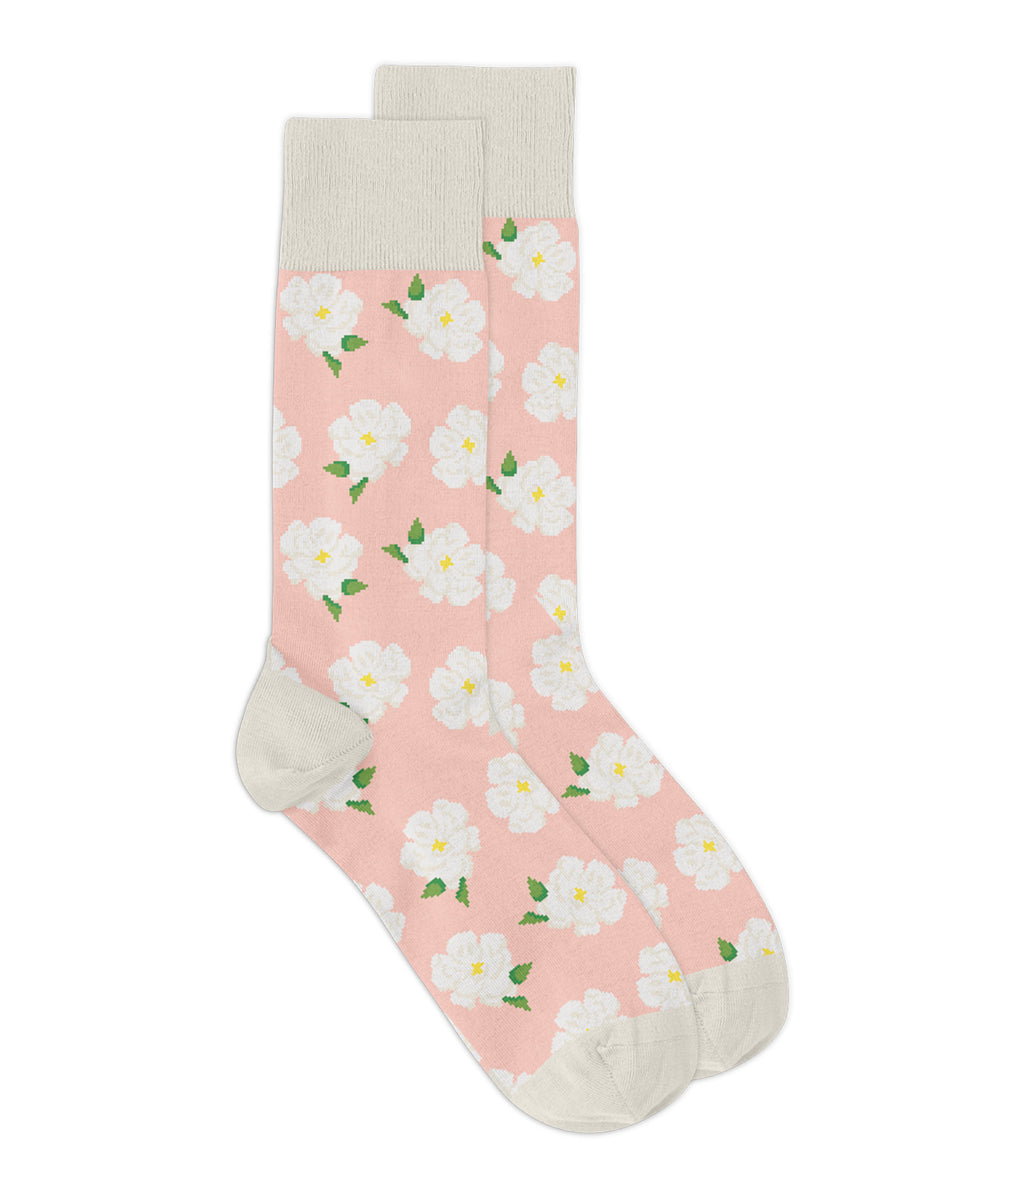 Mother's Day 2018 - Sock Club Store